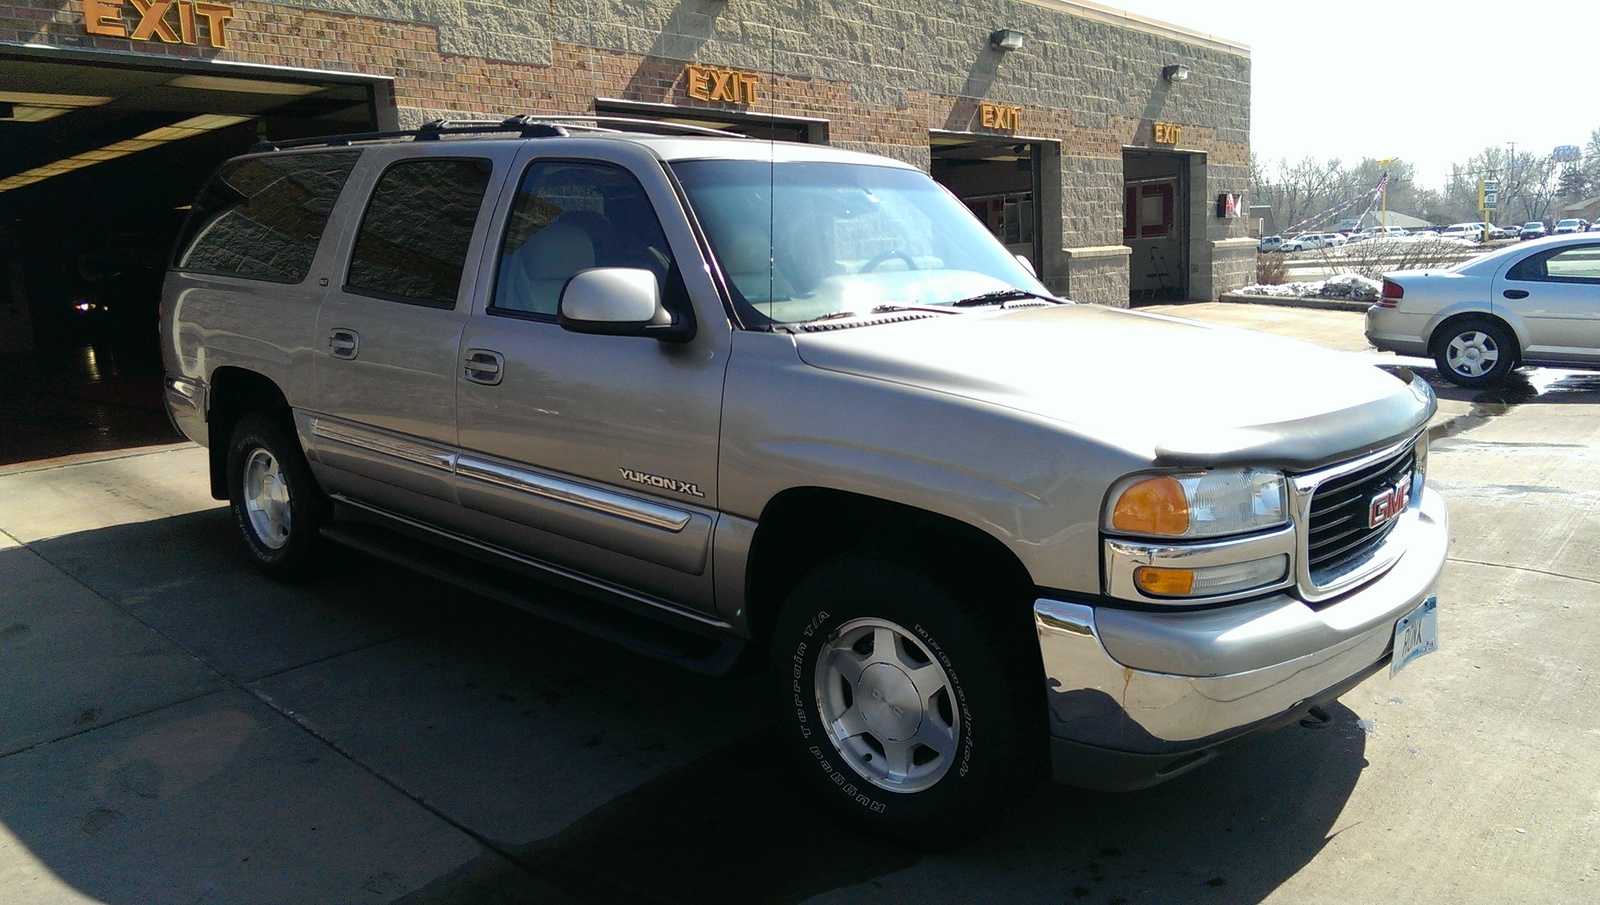 Picture of 2001 gmc yukon xl 4 dr 1500 slt 4wd suv exterior